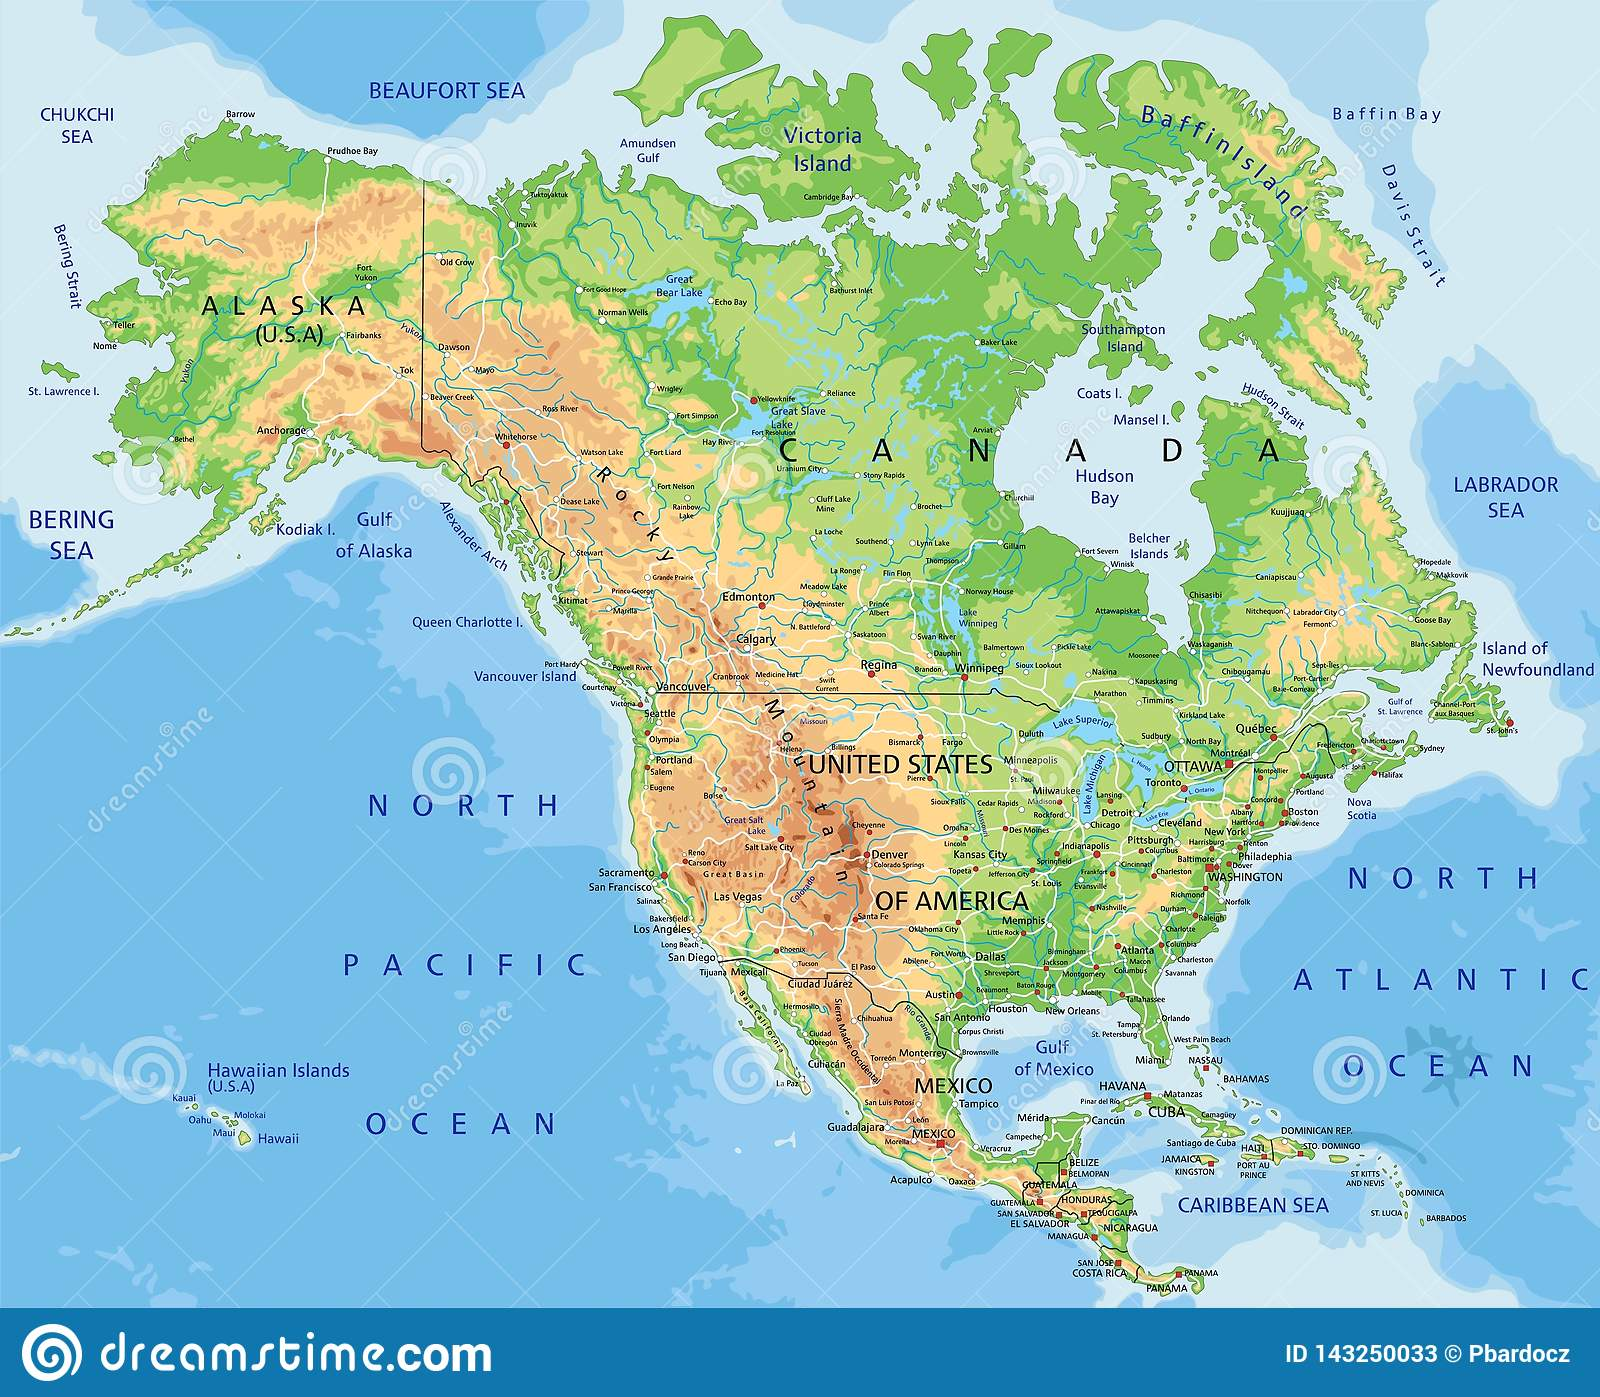 Image of: Physical Map Stock Illustrations 24 486 Physical Map Stock Illustrations Vectors Clipart Dreamstime